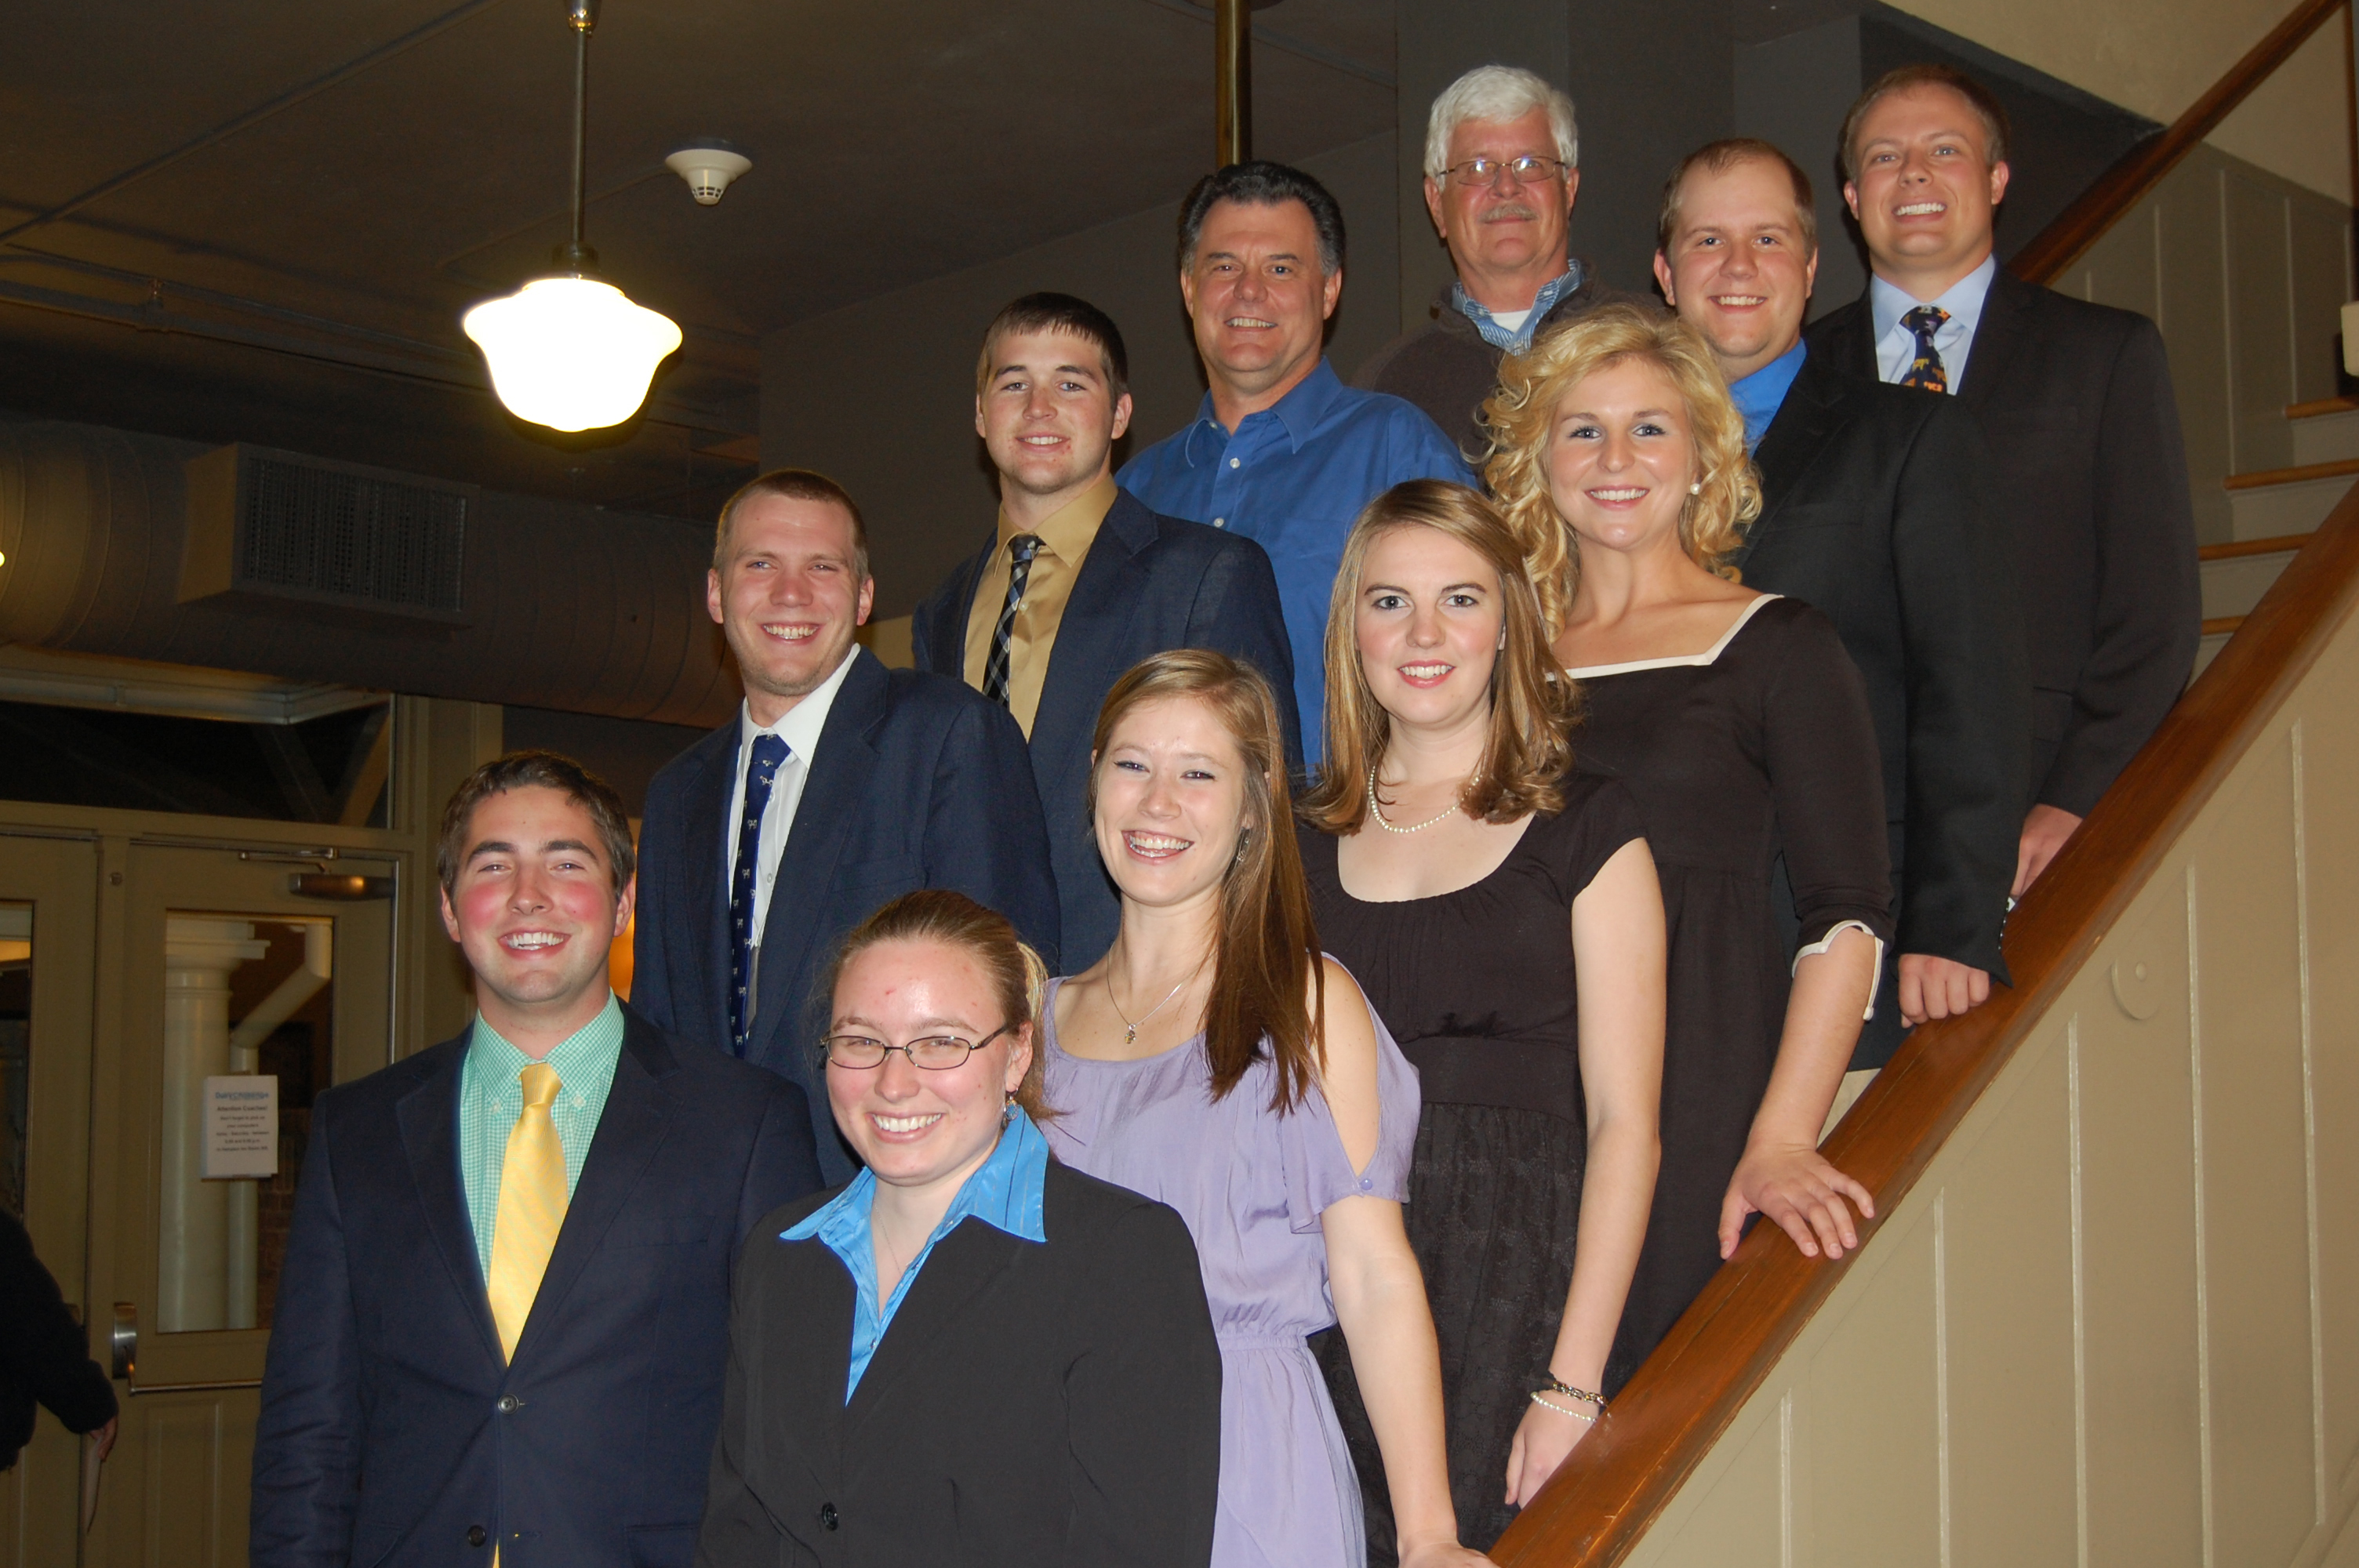 A group photo of nine students and two professors standing on a staircase. The students participated in the North American Intercollegiate Dairy Challenge.